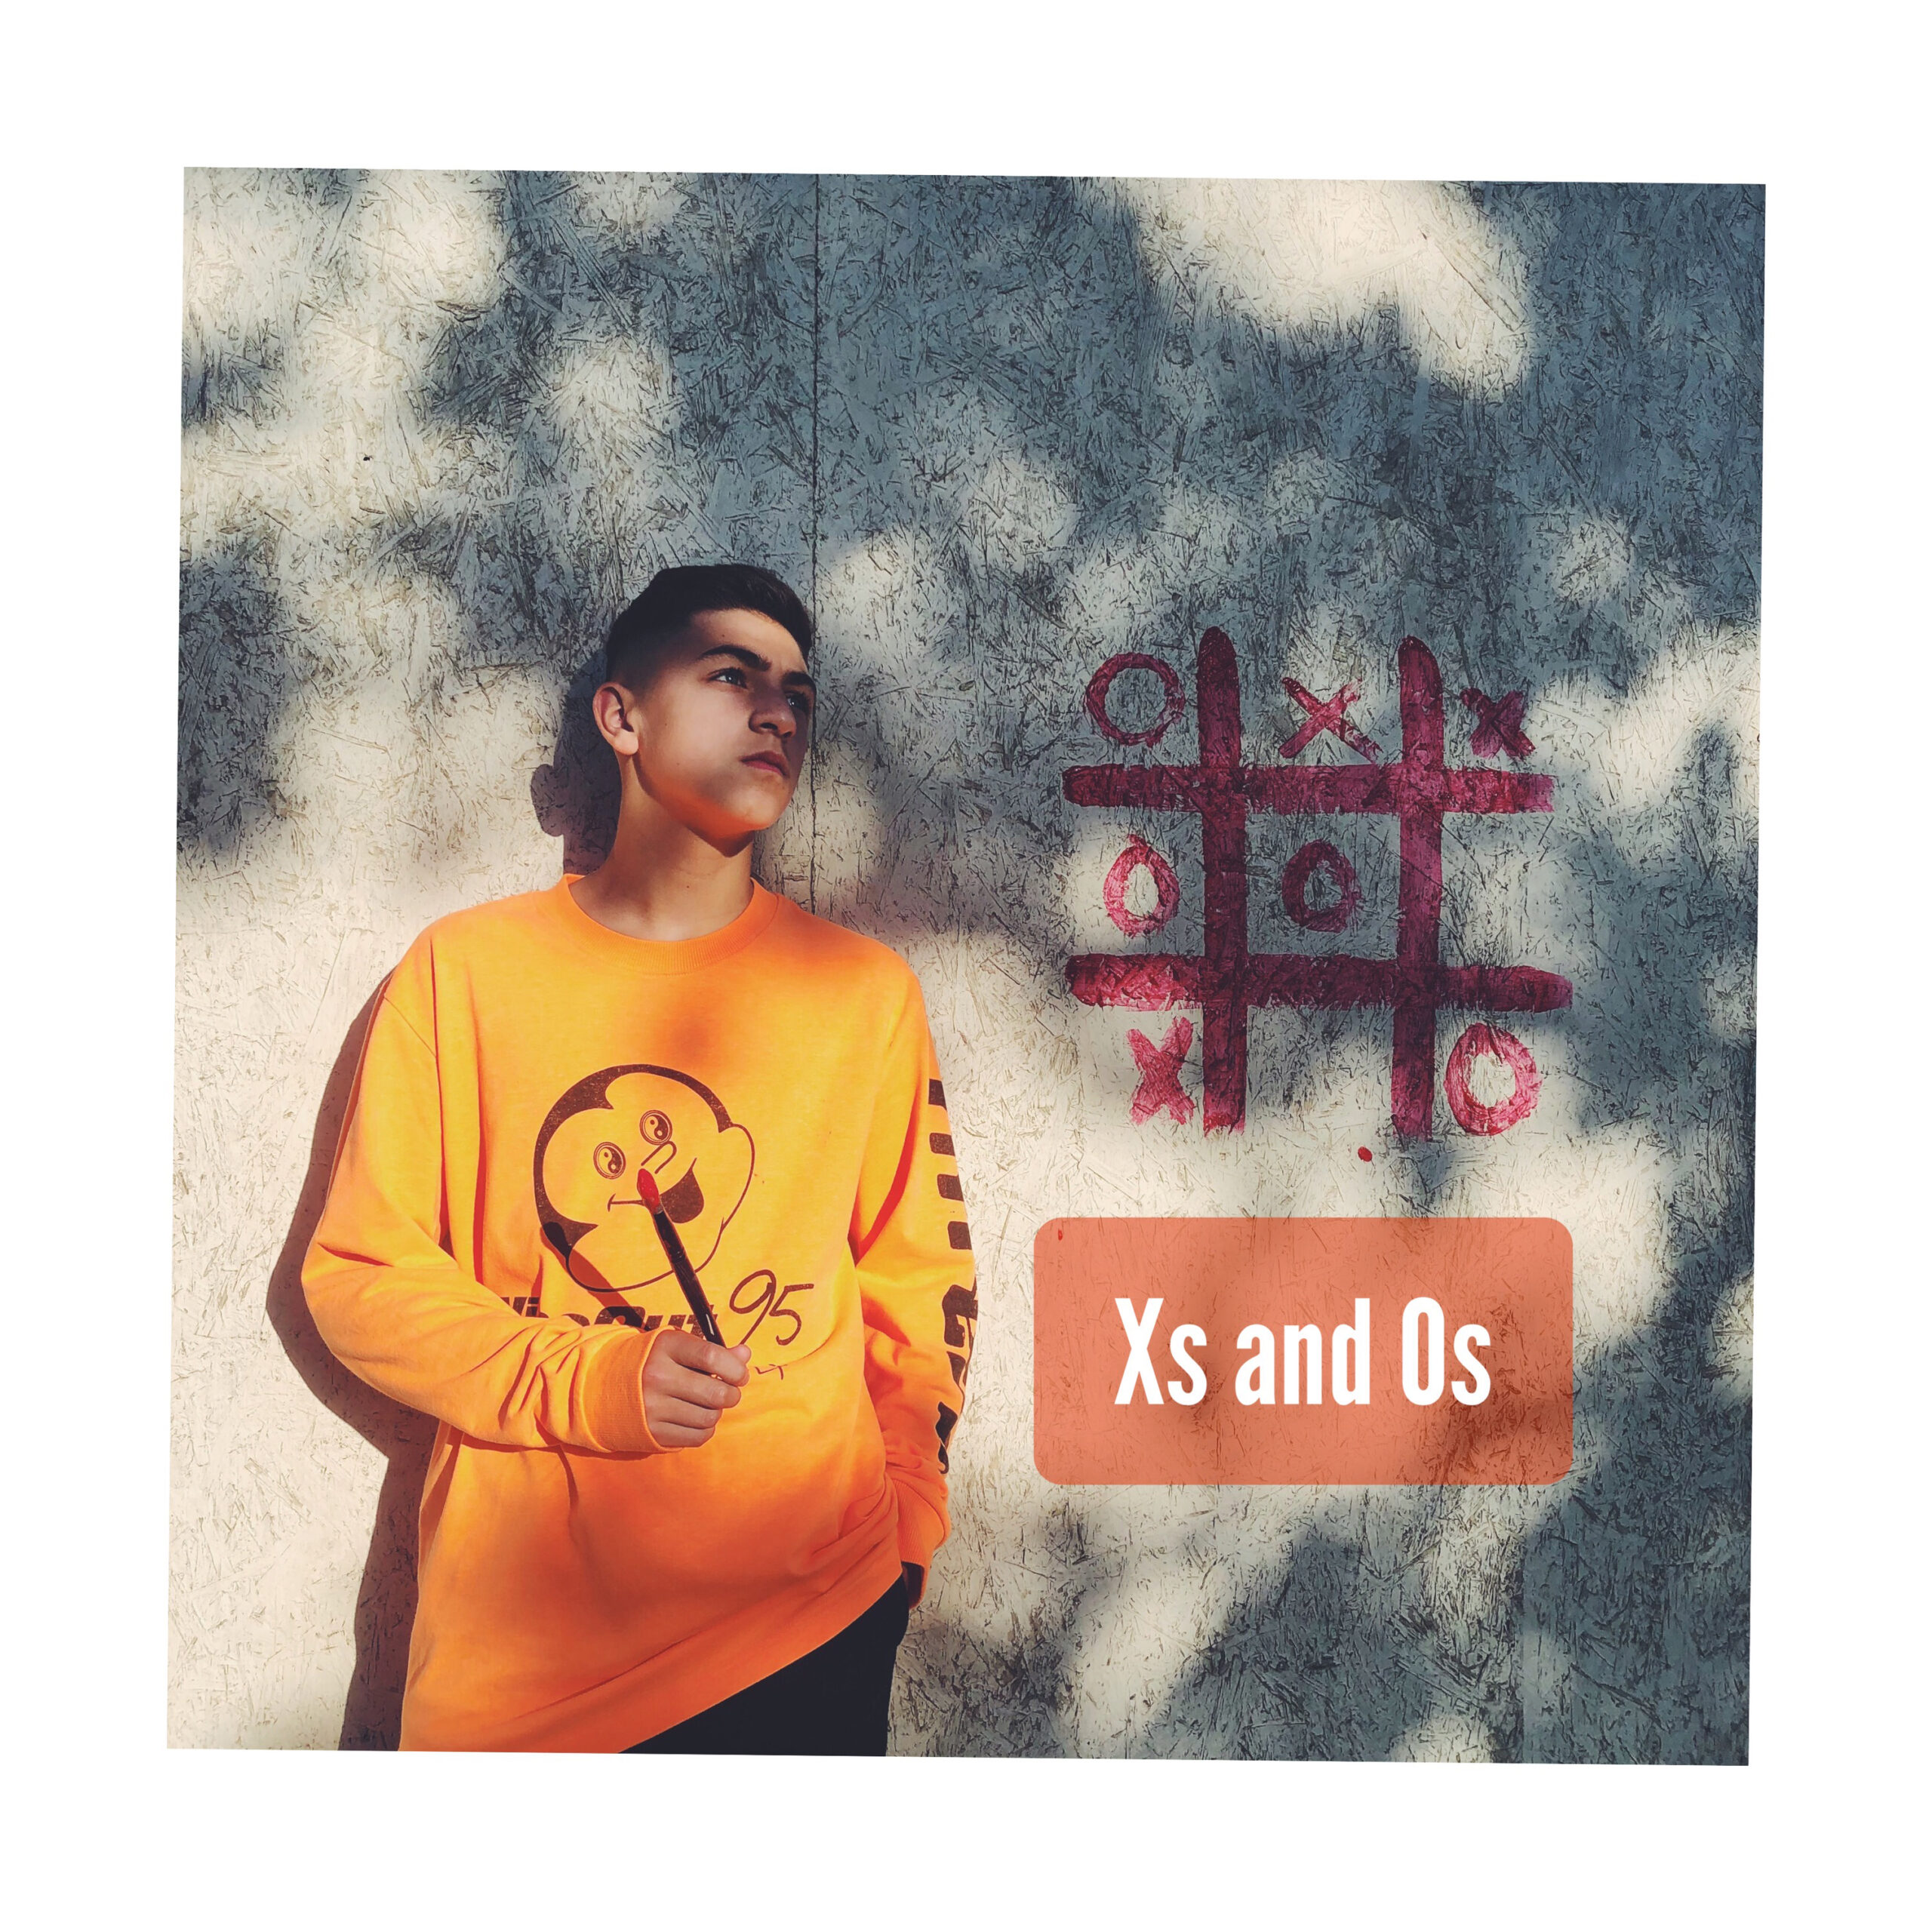 CONOR MARCUS releases new single 'Xs and Os' - Listen Now!